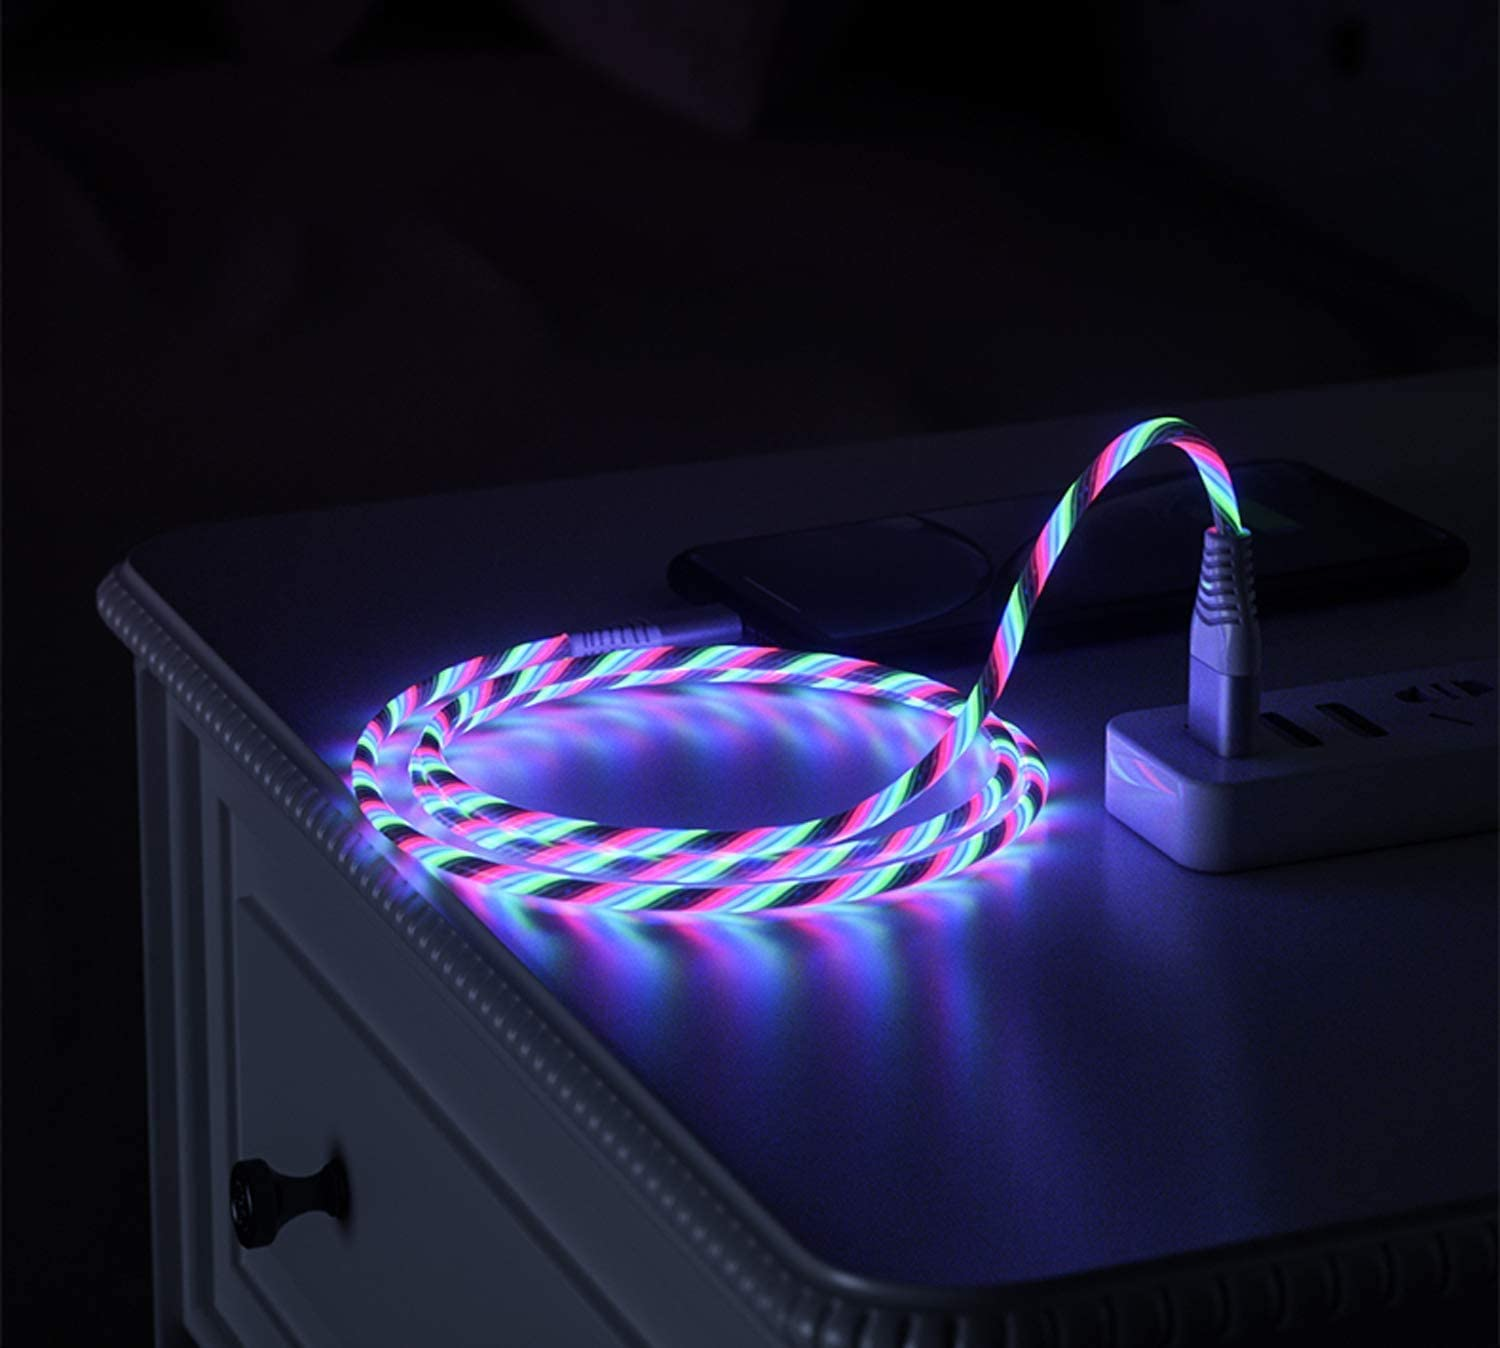 Color-changing//3.3ft QIKIQI 3 Packs Flowing Led 3 in 1 Charging Cable Light Up Glowing Muti Charging Cable Micro USB//Type C//IP Compatible with Phone XS MAX// 11 Pro Max//8 Plus//Galaxy Note 10 Plus//S10